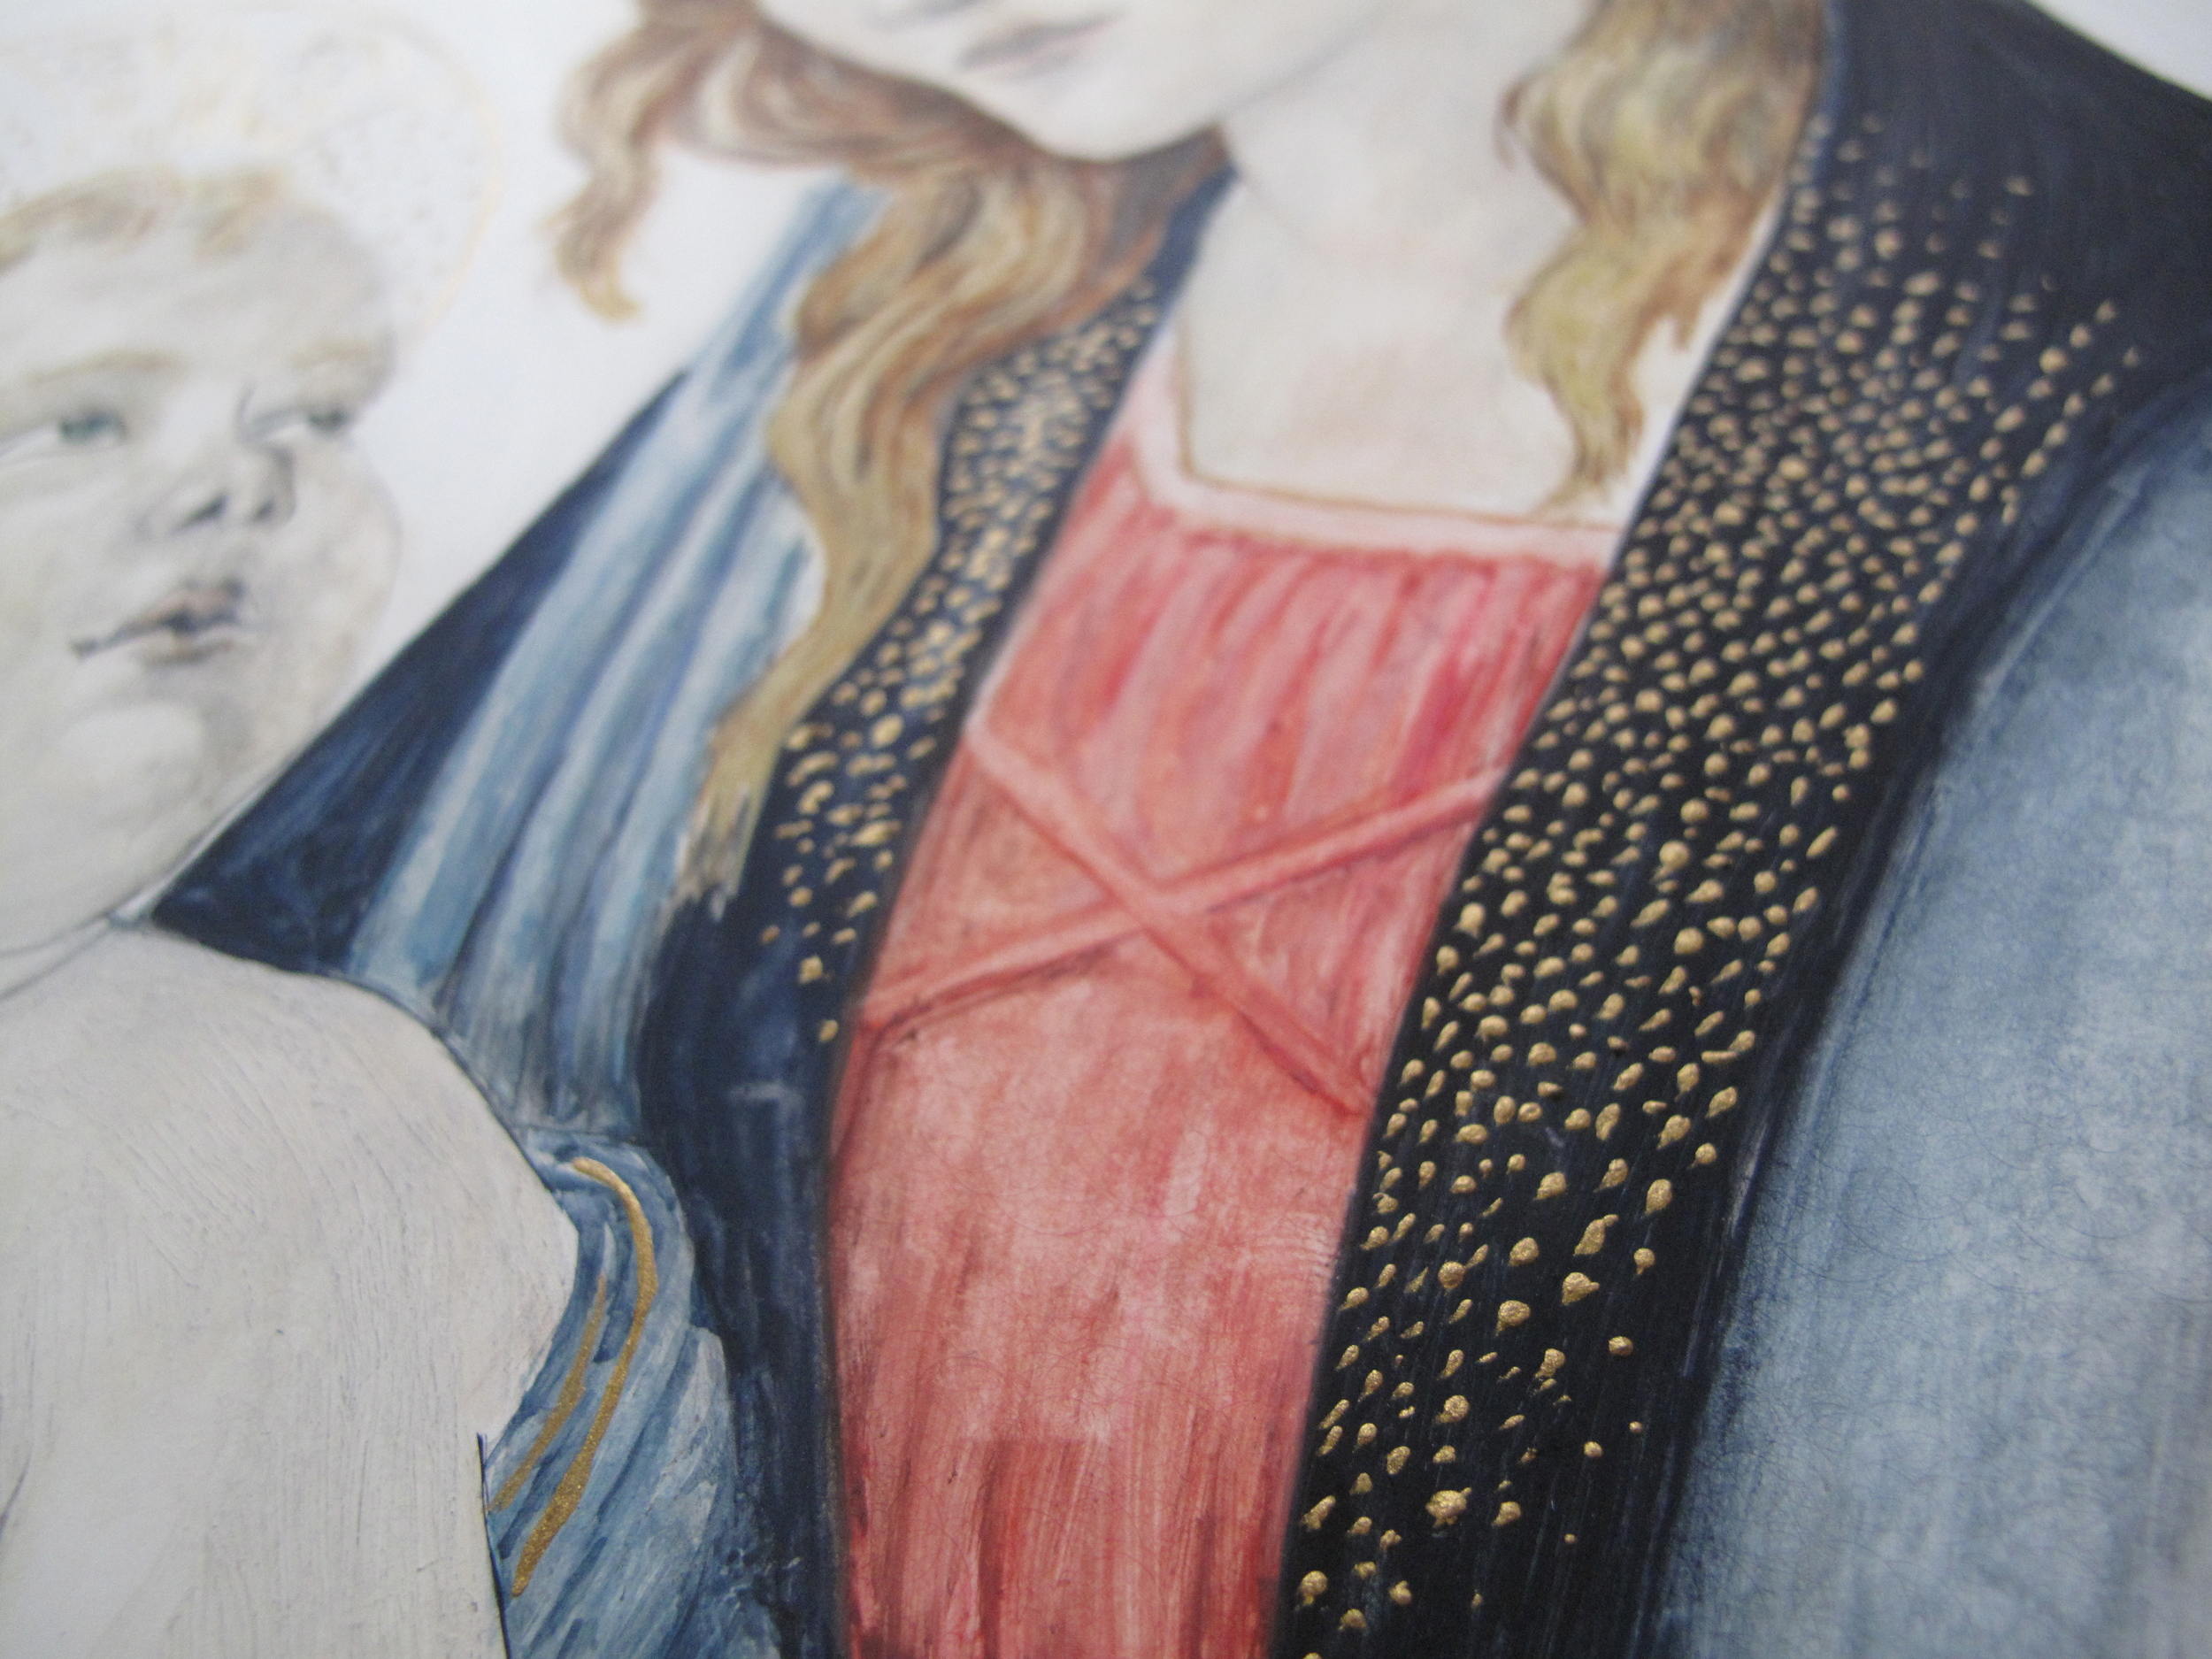 Madonna And Child painting detail of gold